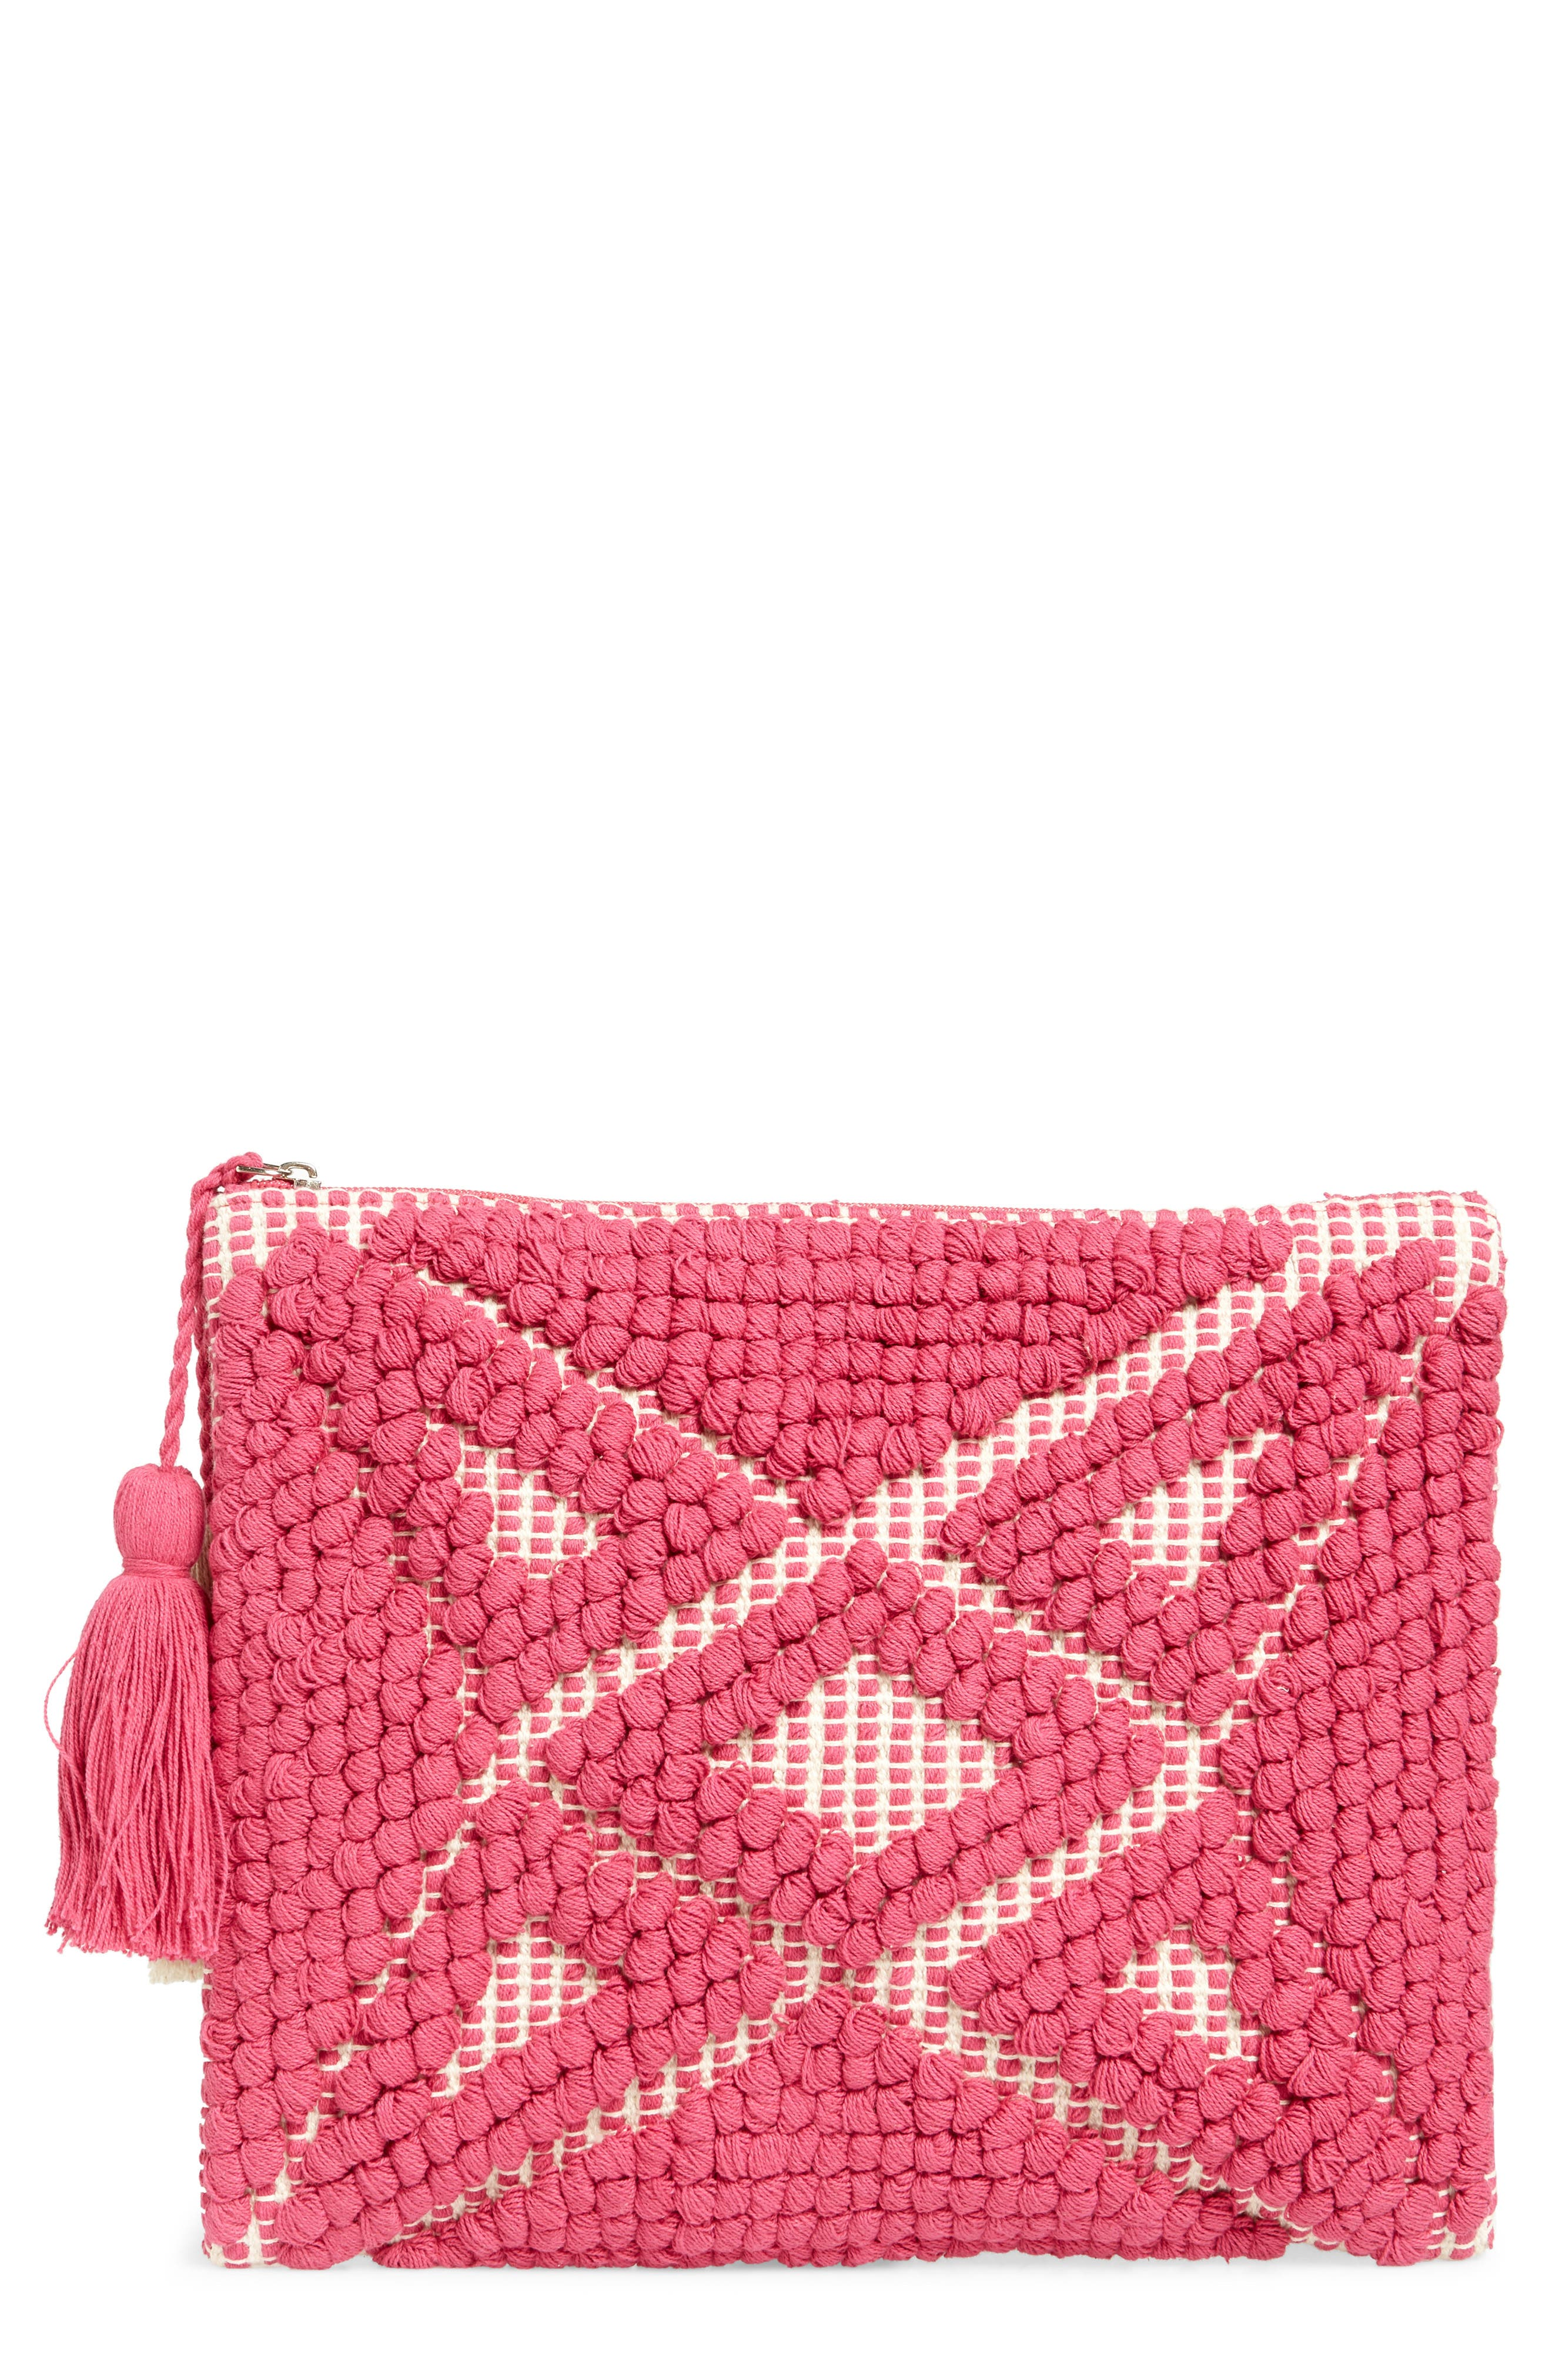 Palisades Tasseled Woven Clutch,                             Main thumbnail 1, color,                             655